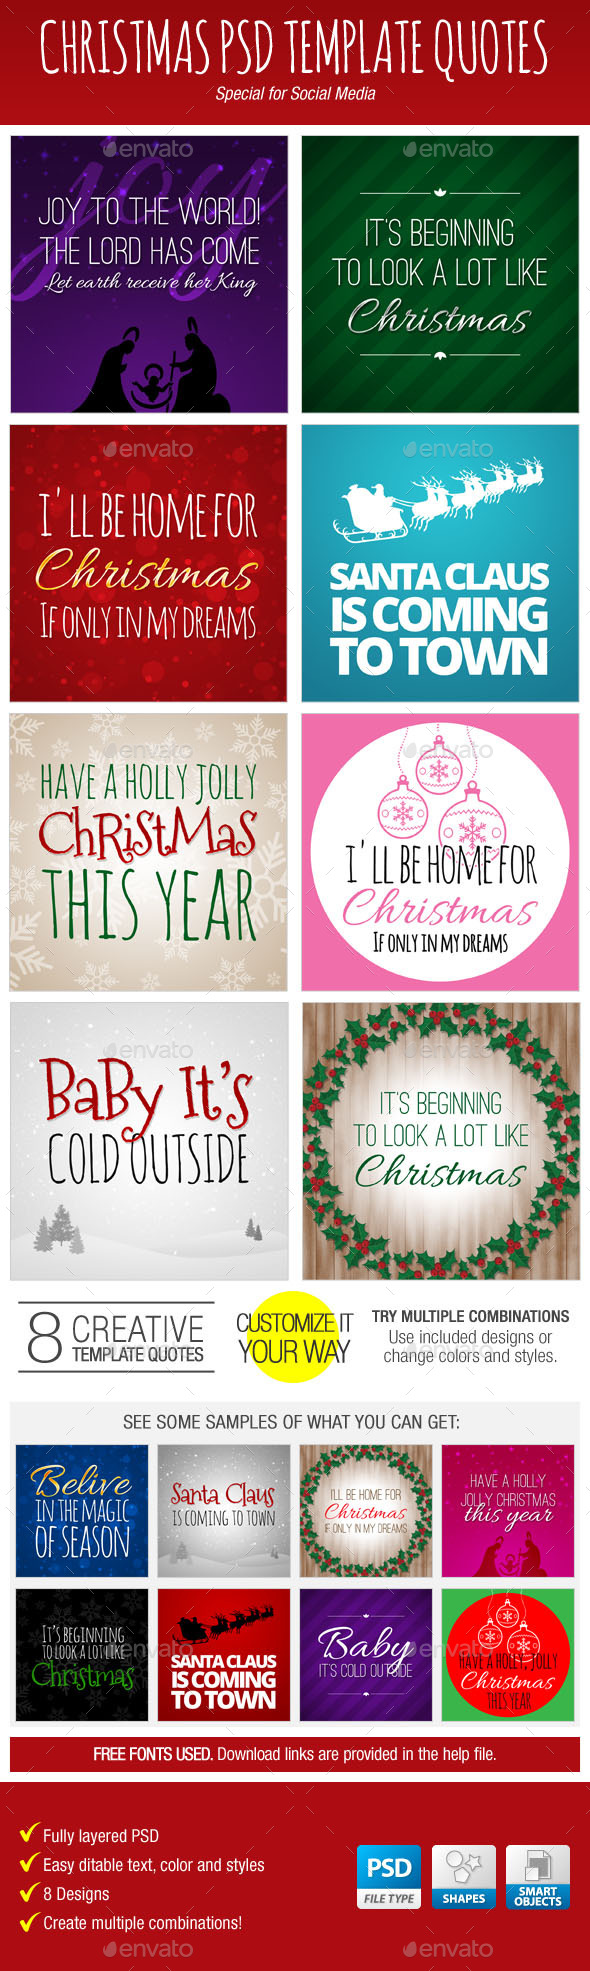 Christmas PSD Template Quotes for Social Media - Social Media Web Elements